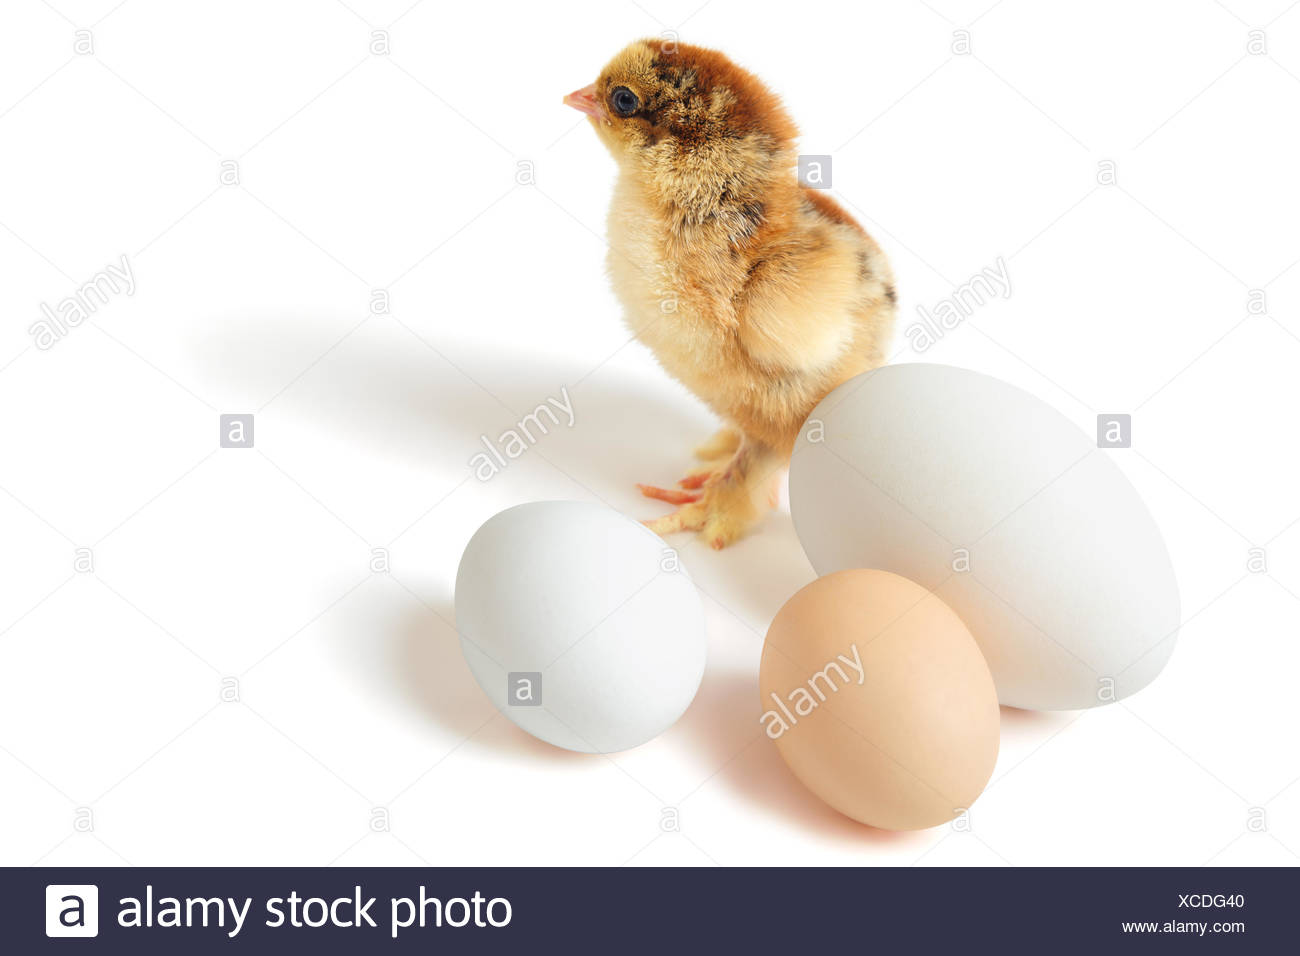 Chick with eggs - Stock Image